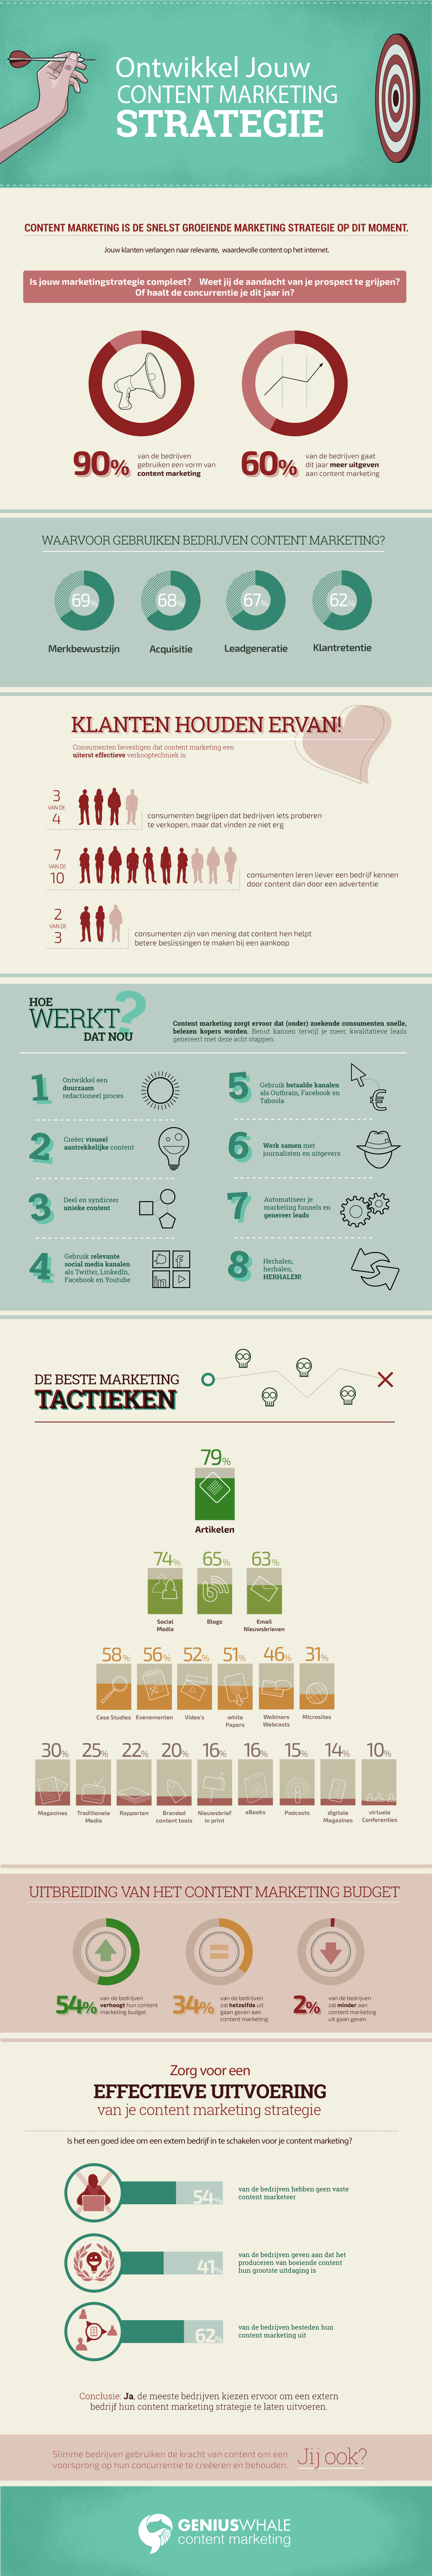 contentmarketing.strategie